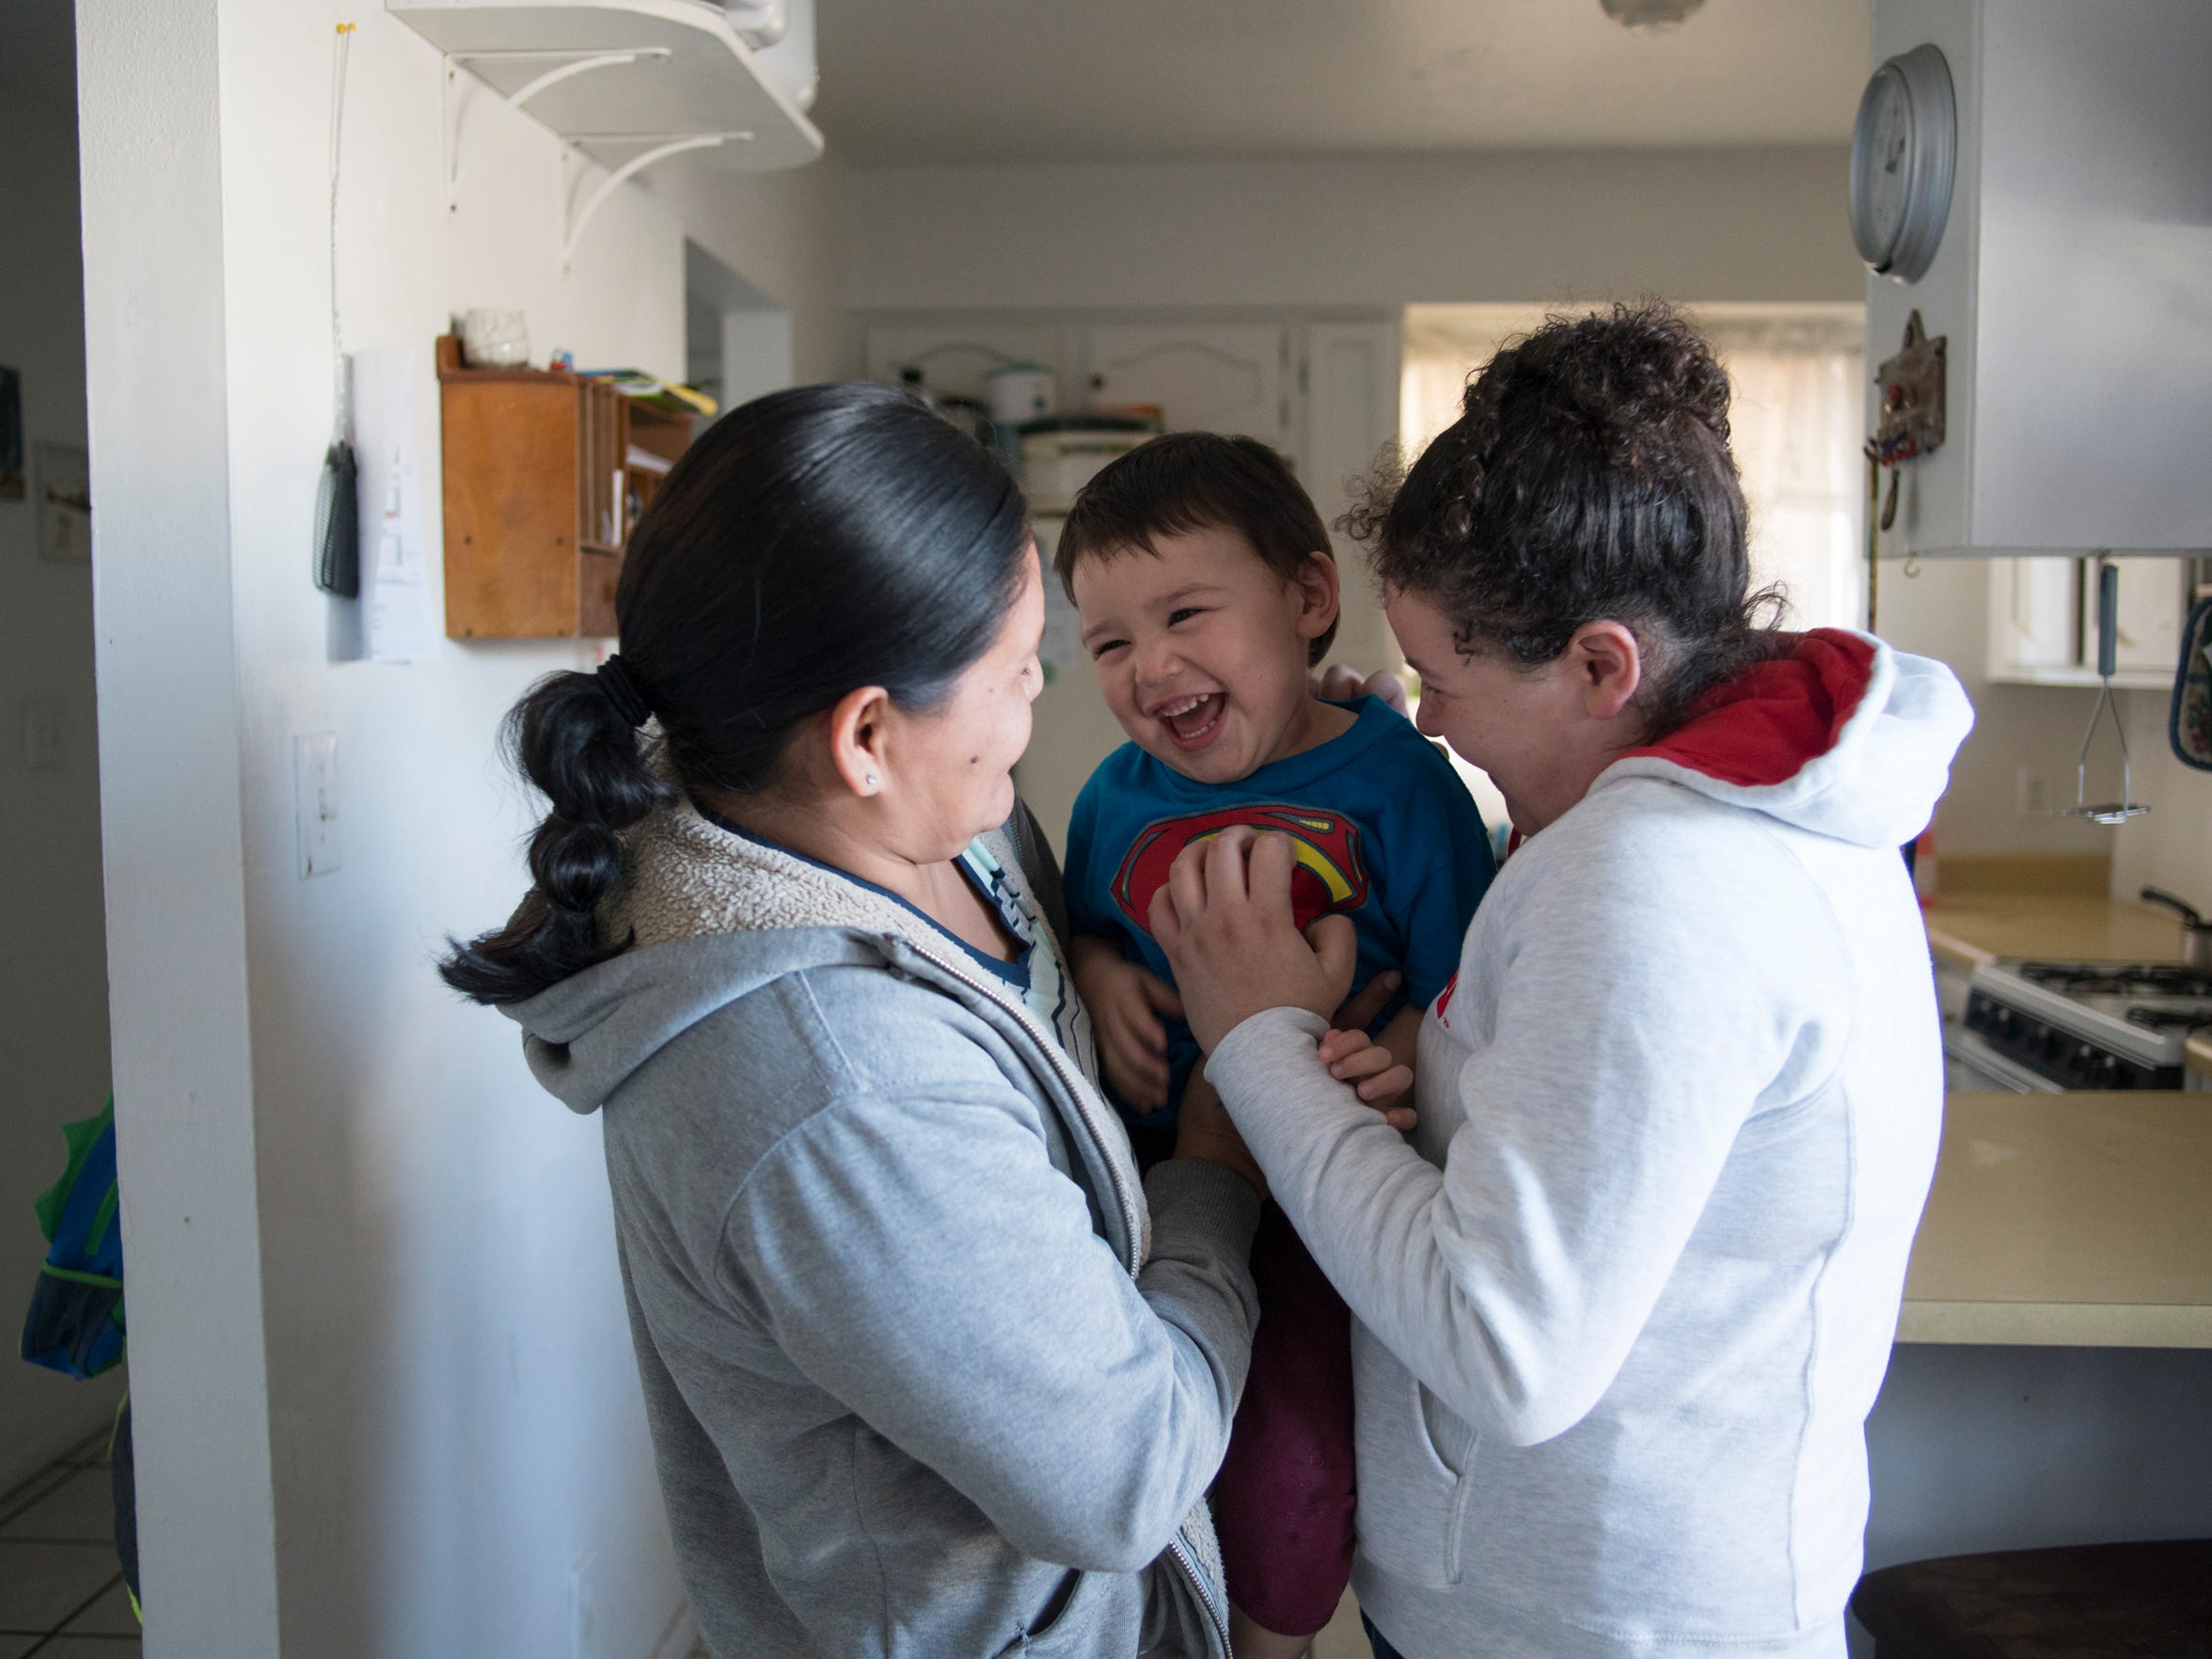 Rhonda Ramirez, her son Josiah Lucero and her boyfriend's daughter Jade Lucero, live in Albuquerque. They live in the city's International District, one of the poorer neighborhoods in the state.